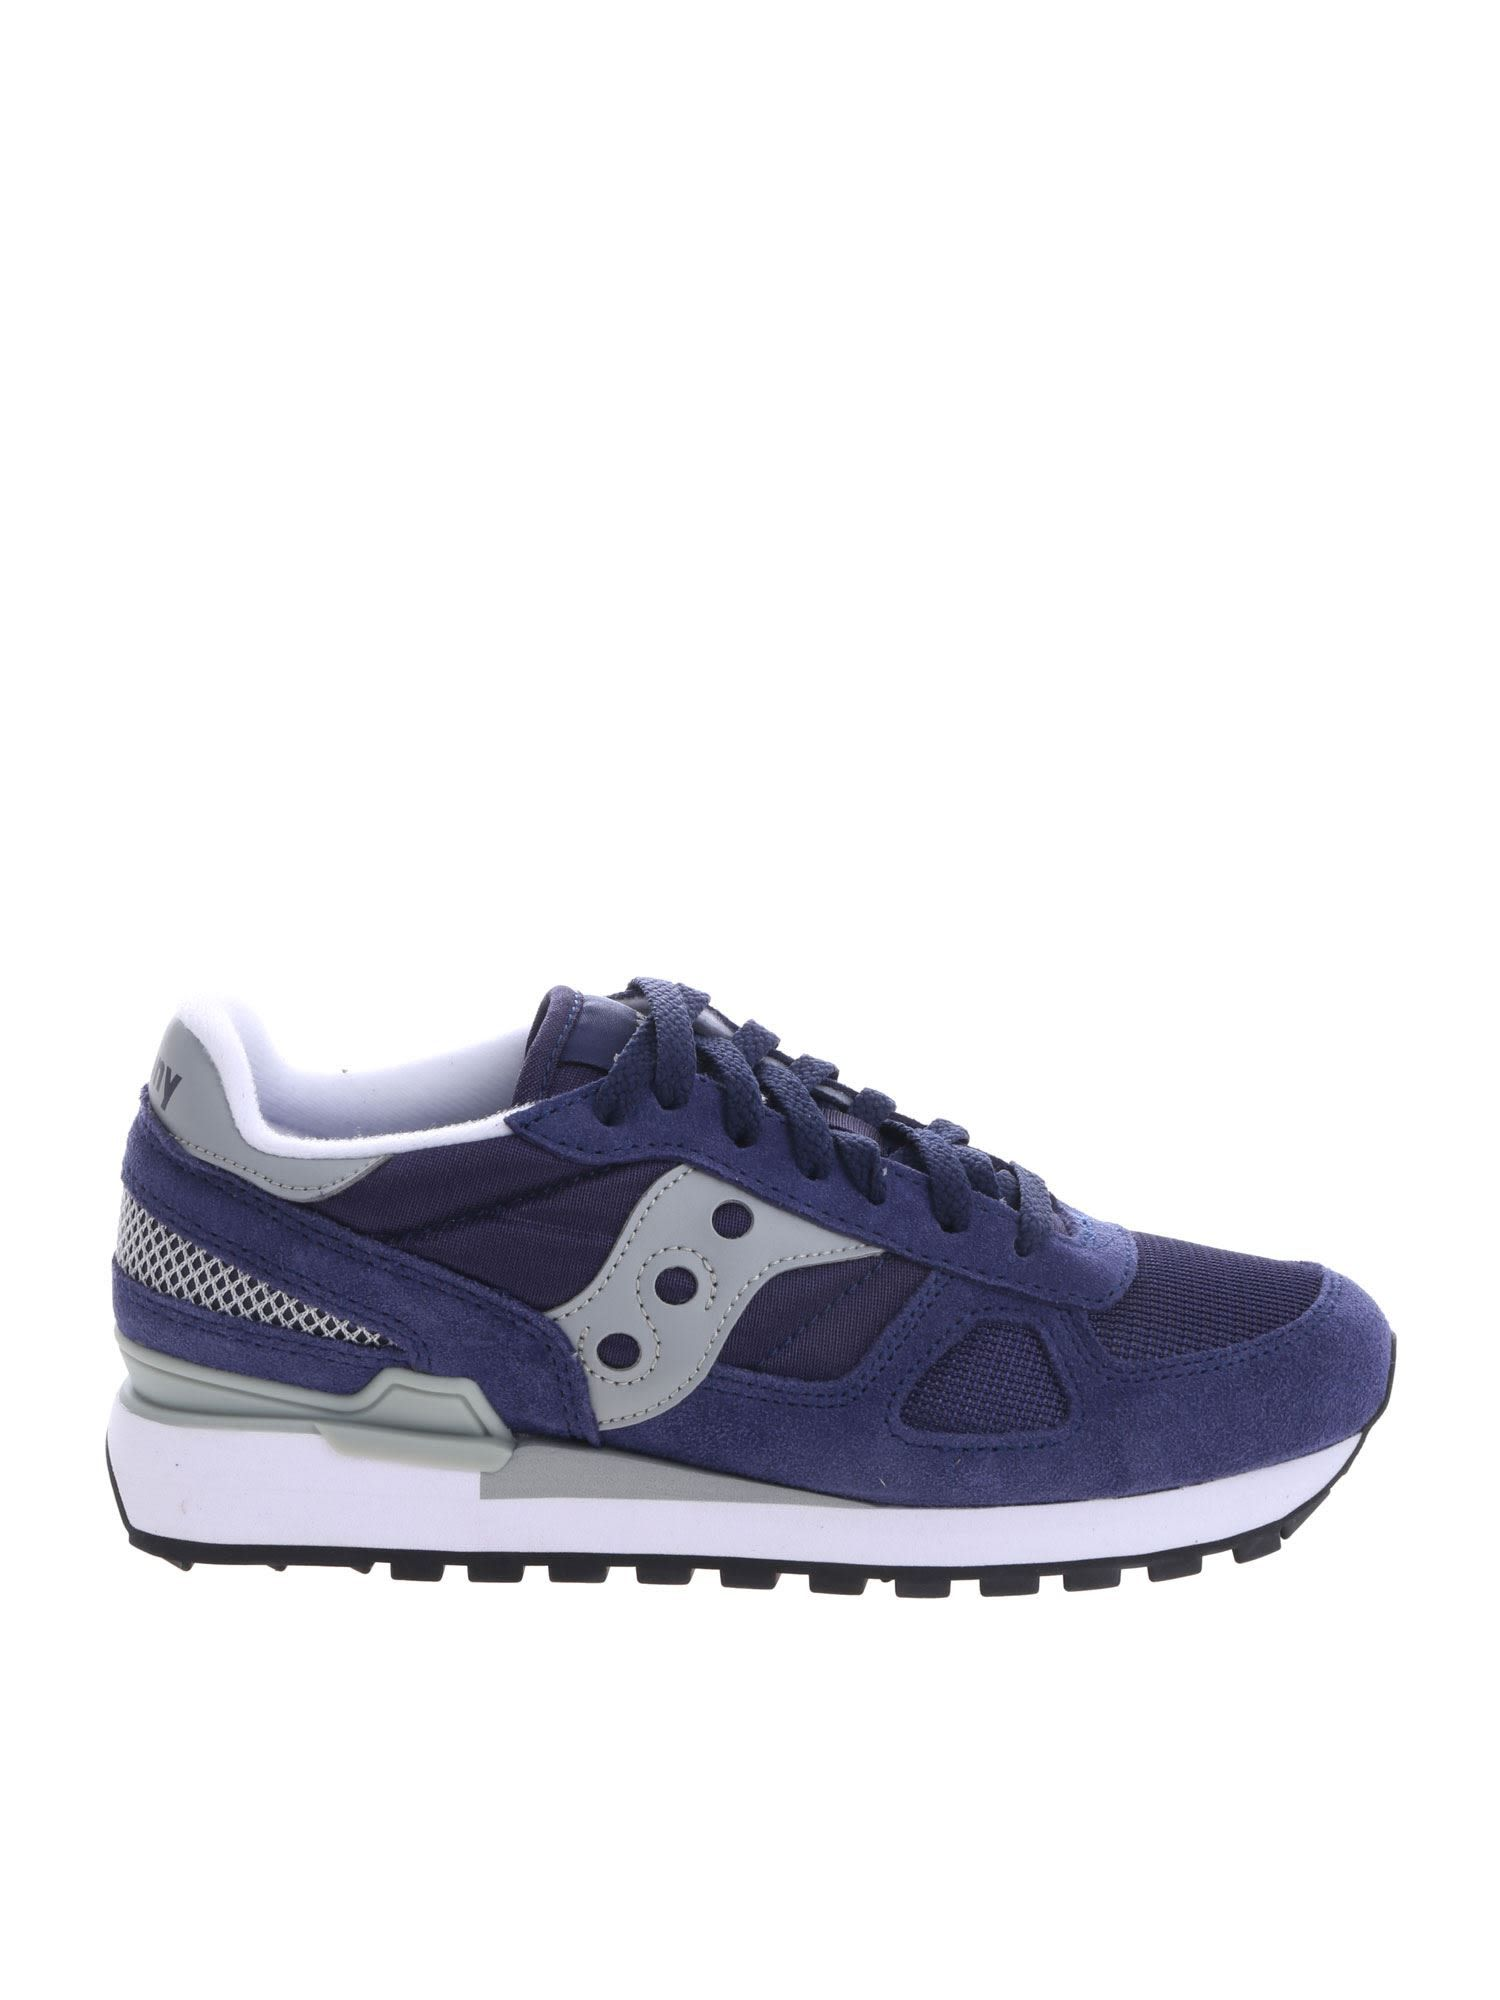 Saucony SHADOW Men Sneakers Low Top Lace Up Athletic Shoes Trainers